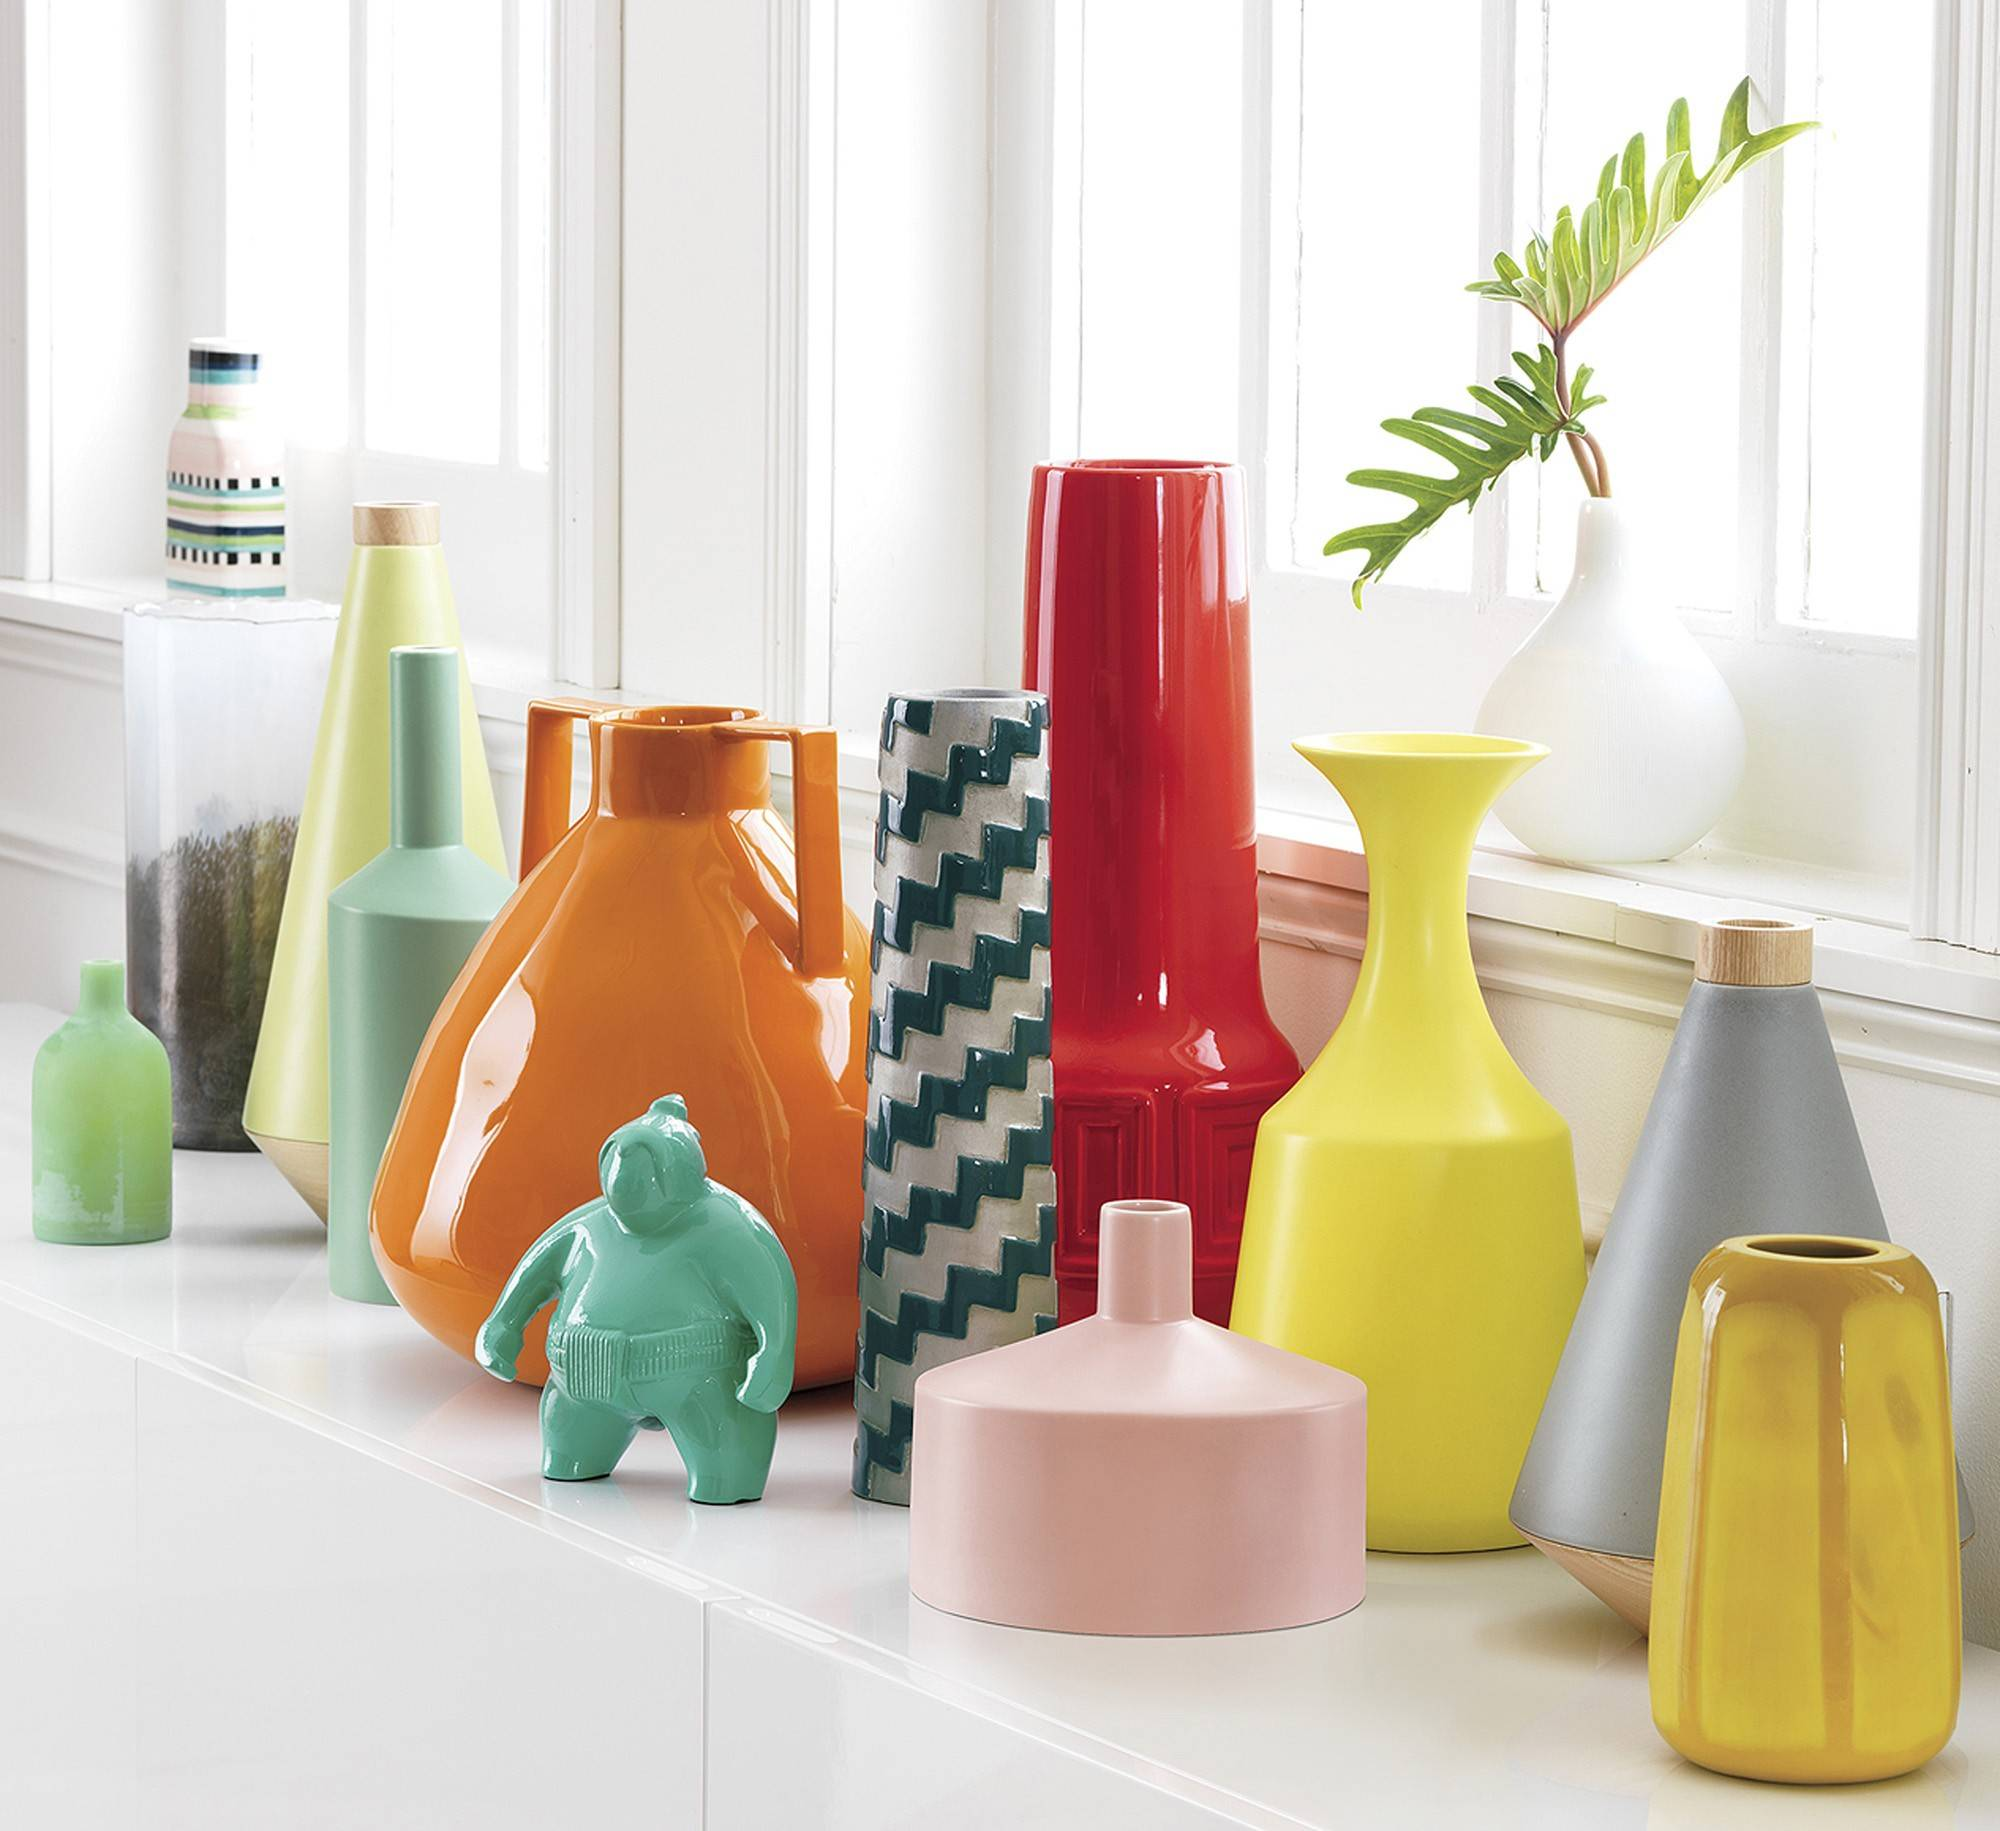 Group colorful sculptural vases of varying sizes on a bookcase, windowsill or table. Check out CB2's Askew vases, from $19.95.